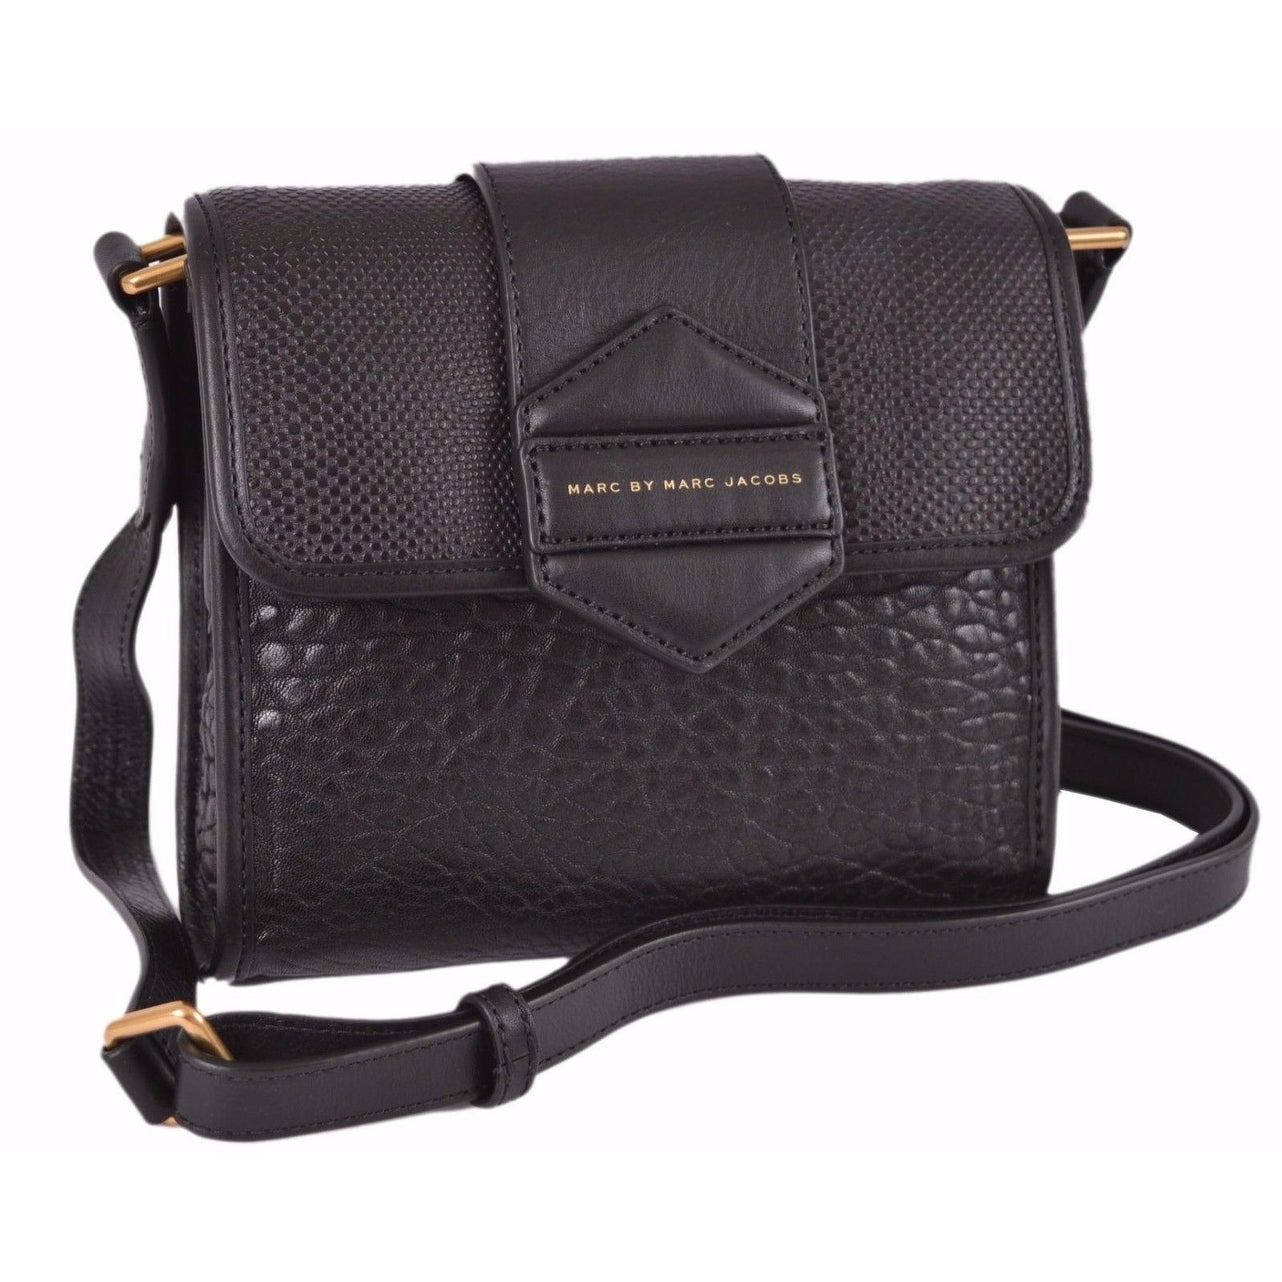 ff3bdb1088 Shop Marc By Marc Jacobs M0004767 Flipping Out Black Leather Crossbody  Purse Bag - 7.25 x 8 x 2 inches - Free Shipping Today - Overstock - 20916744